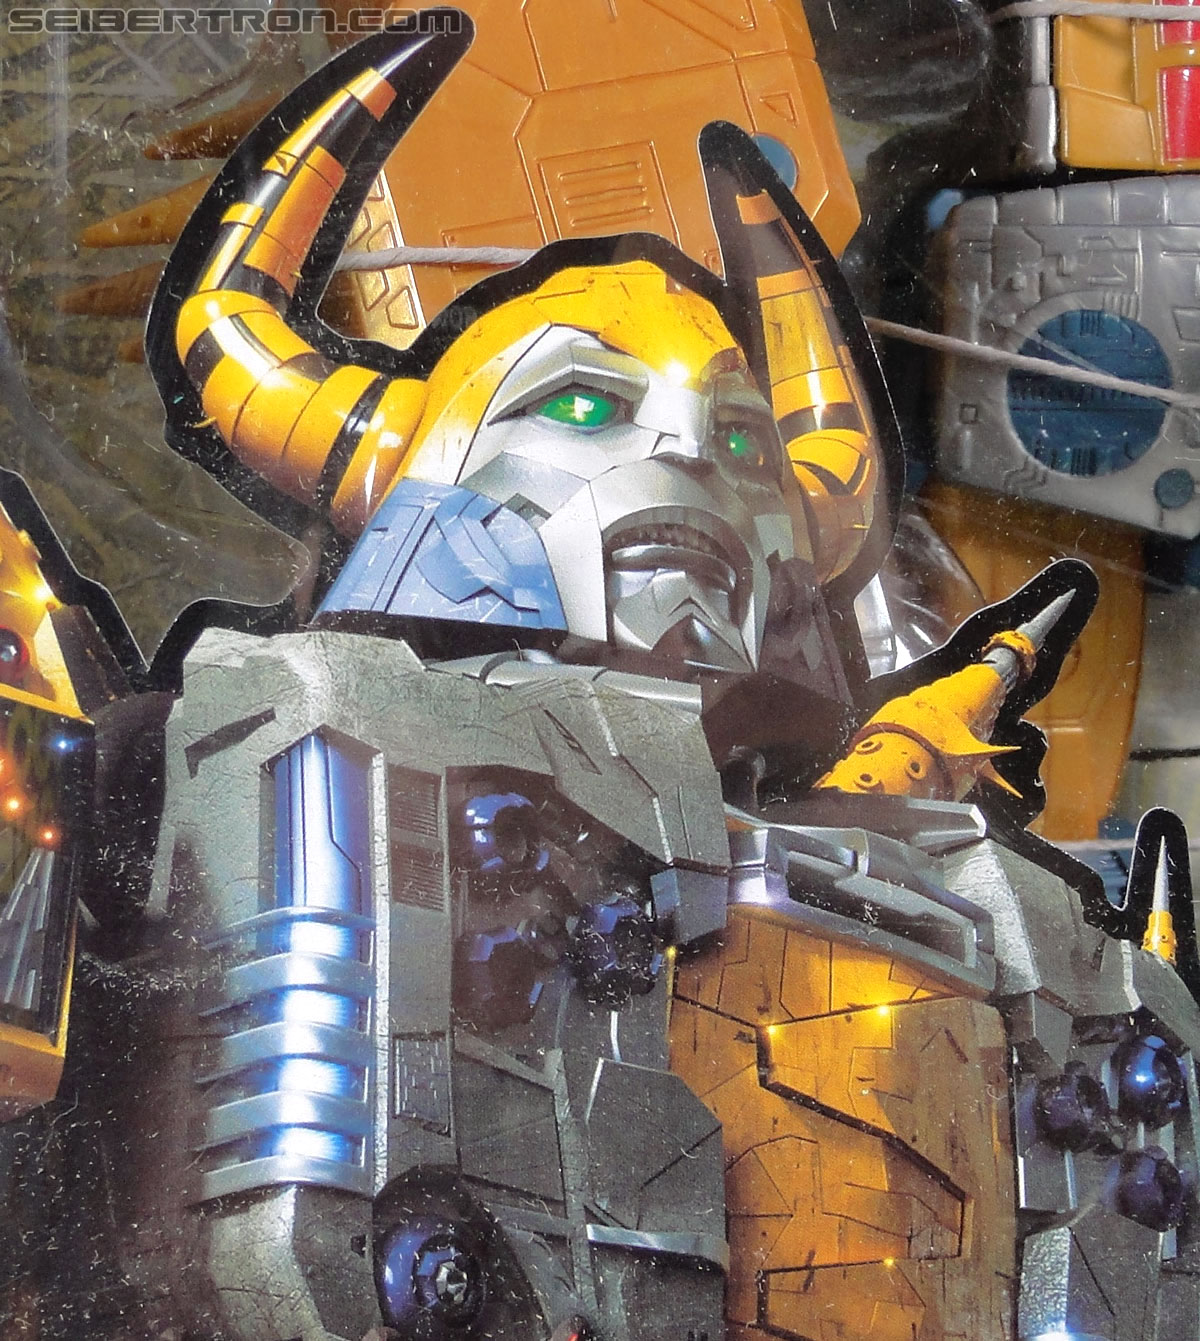 Transformers Generations Unicron (25th Anniversary) (Universal Dominator Unicron) (Image #5 of 262)